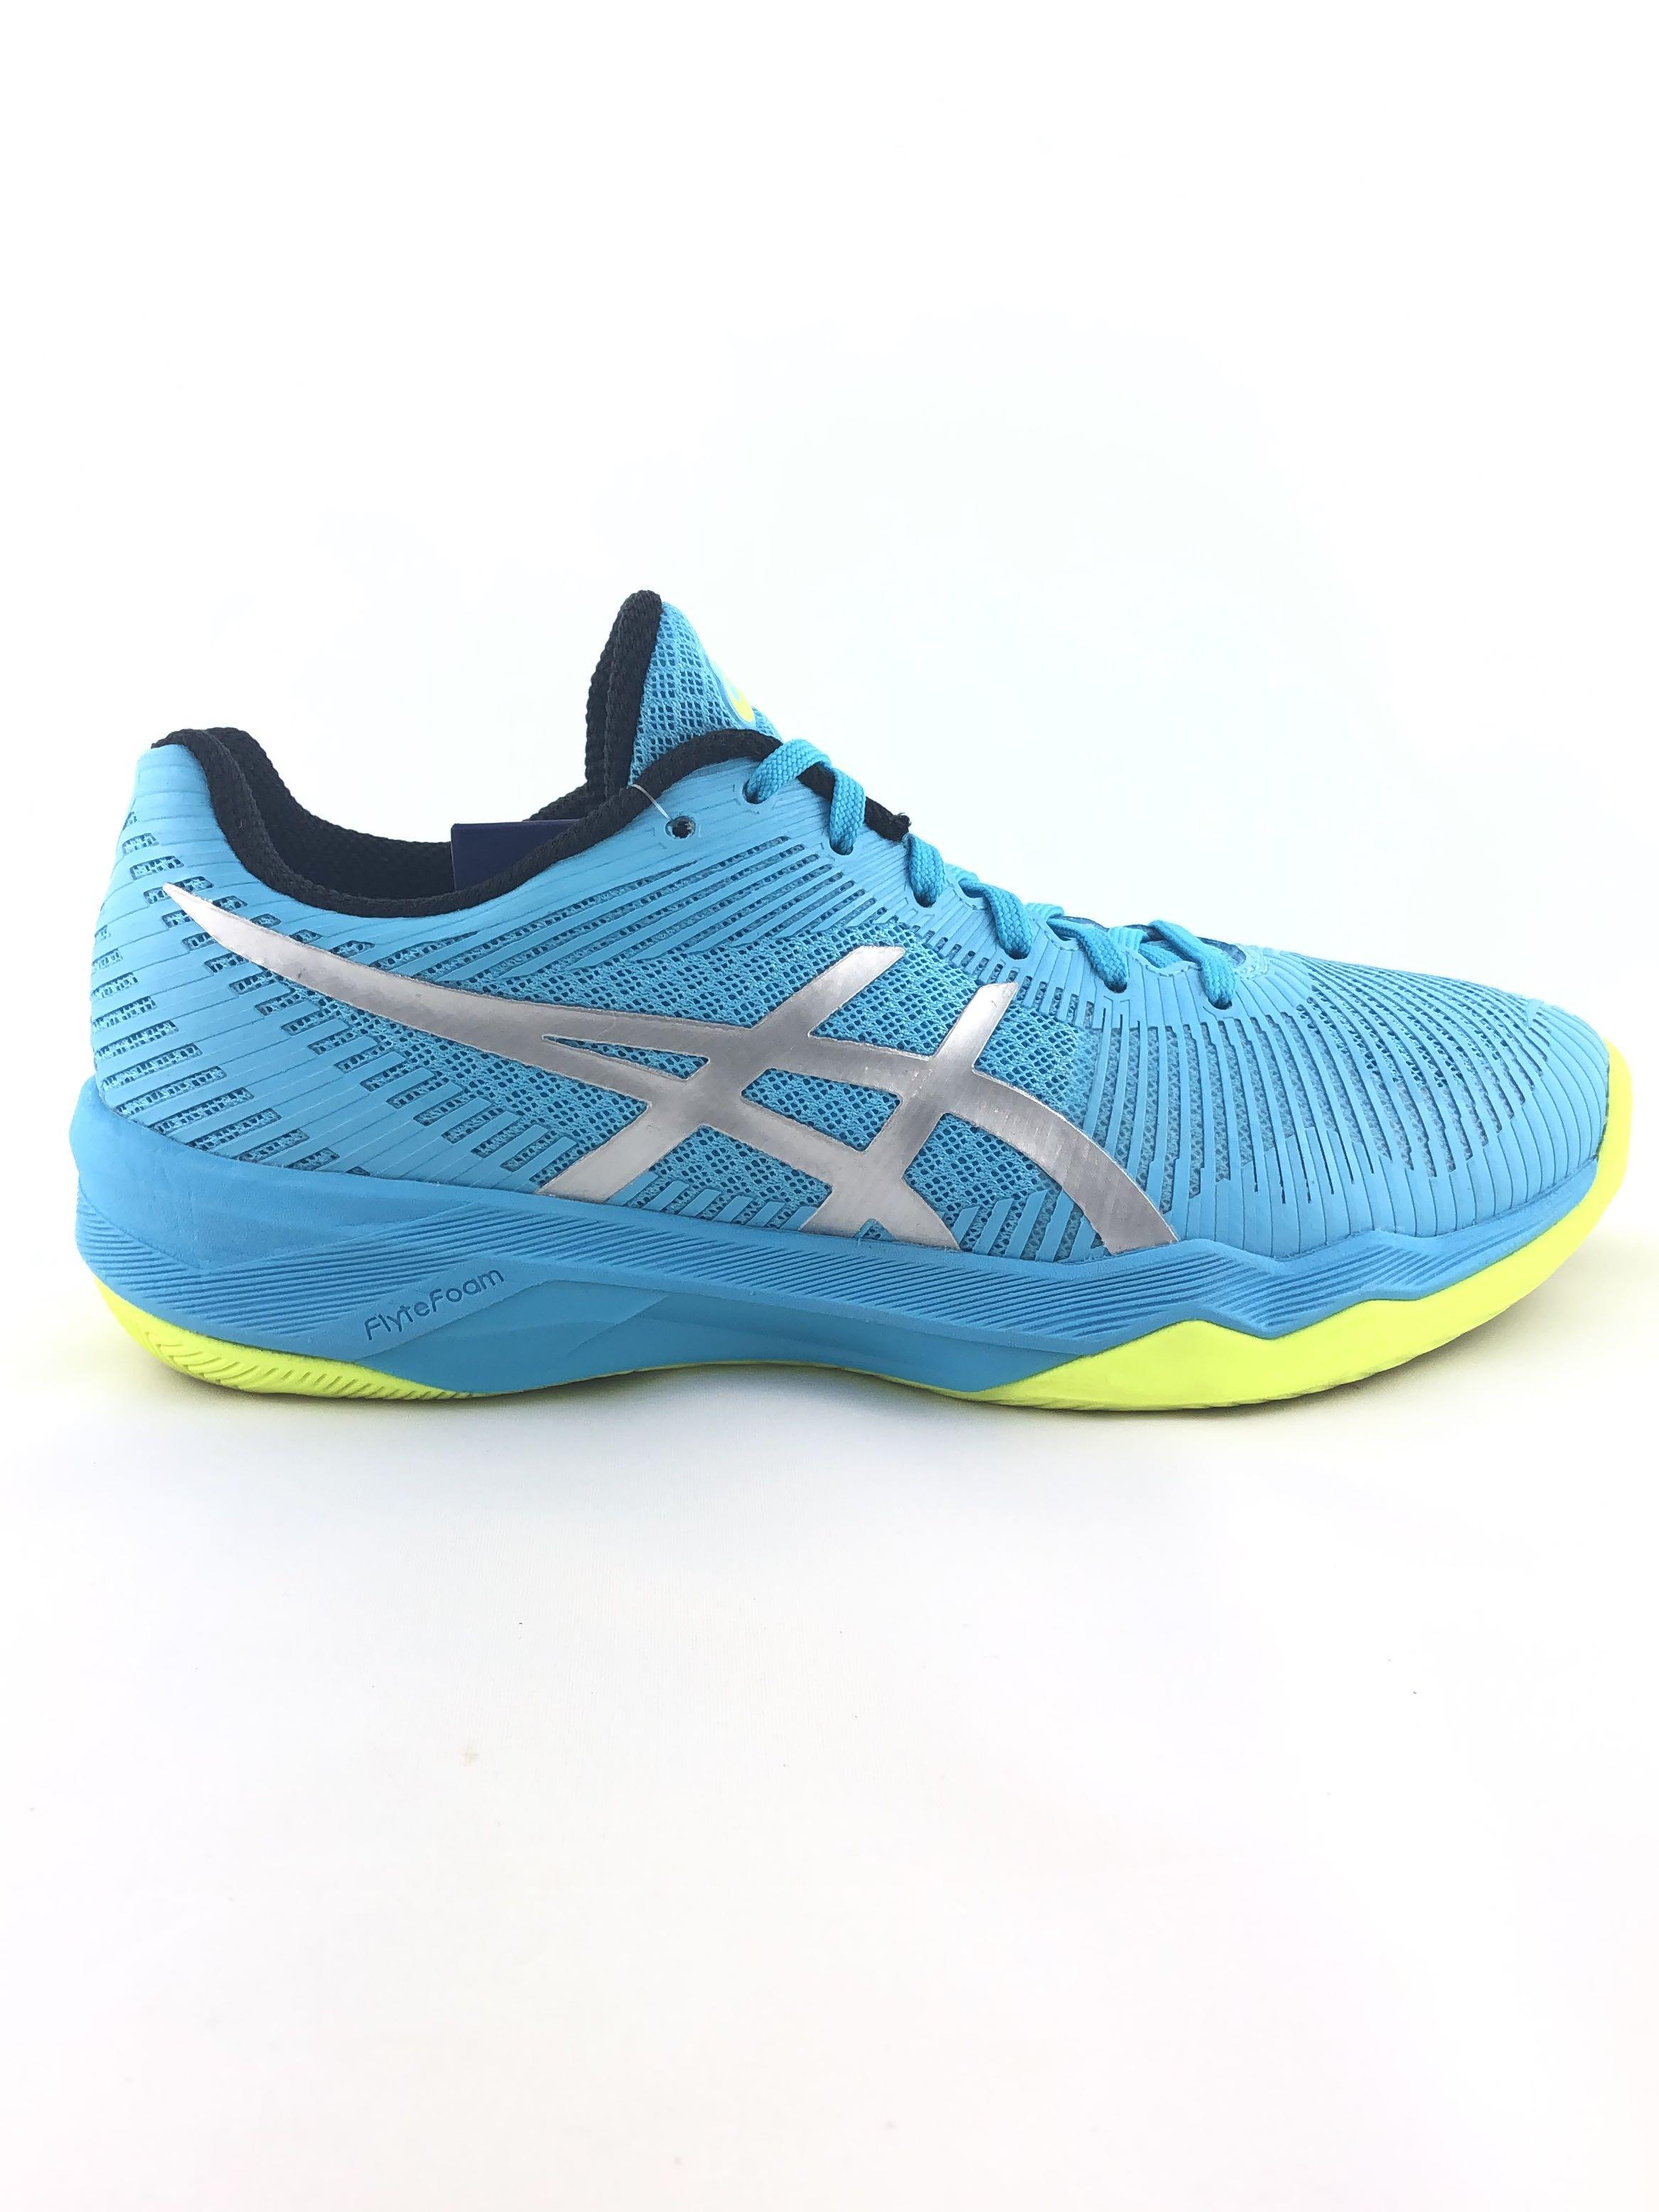 Asics Volley Elite Ff Indoor Court Shoes For Badminton Basketball Floorball Handball Gym Volleyball Tchoukball Etc Sports Sports Games Equipment On Carousell